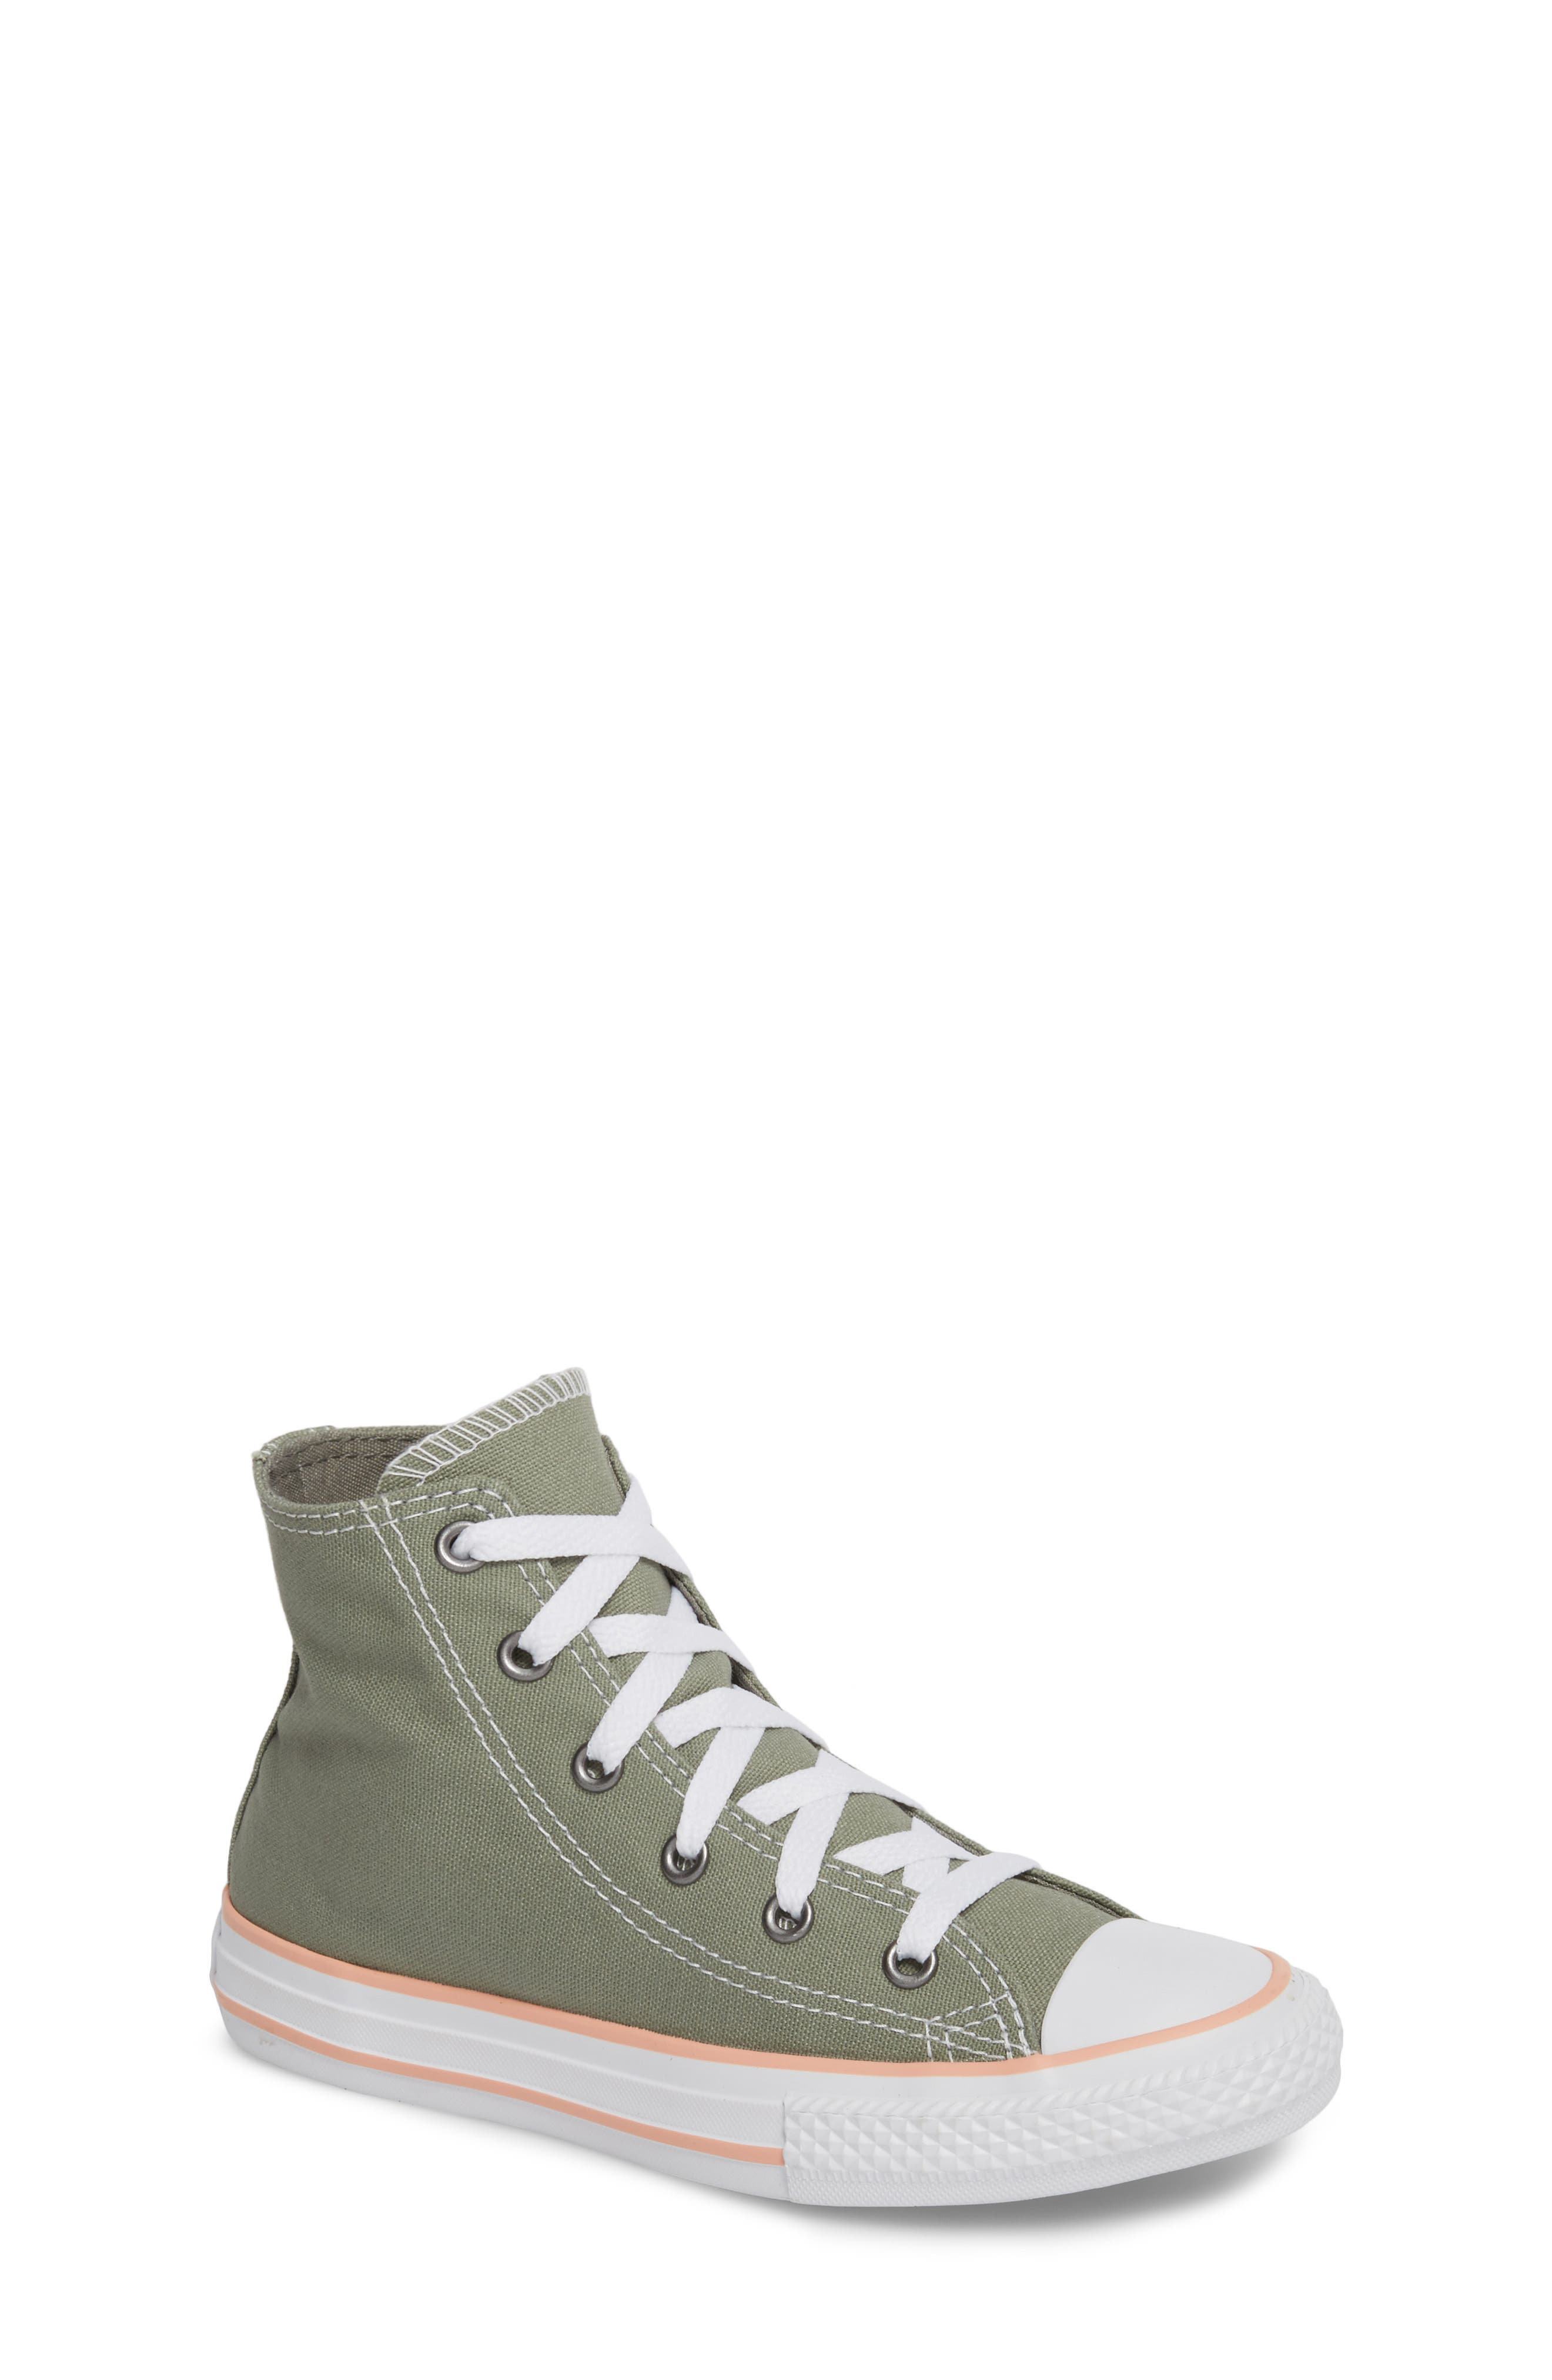 Chuck Taylor<sup>®</sup> All Star<sup>®</sup> High Top Sneaker,                         Main,                         color, 020